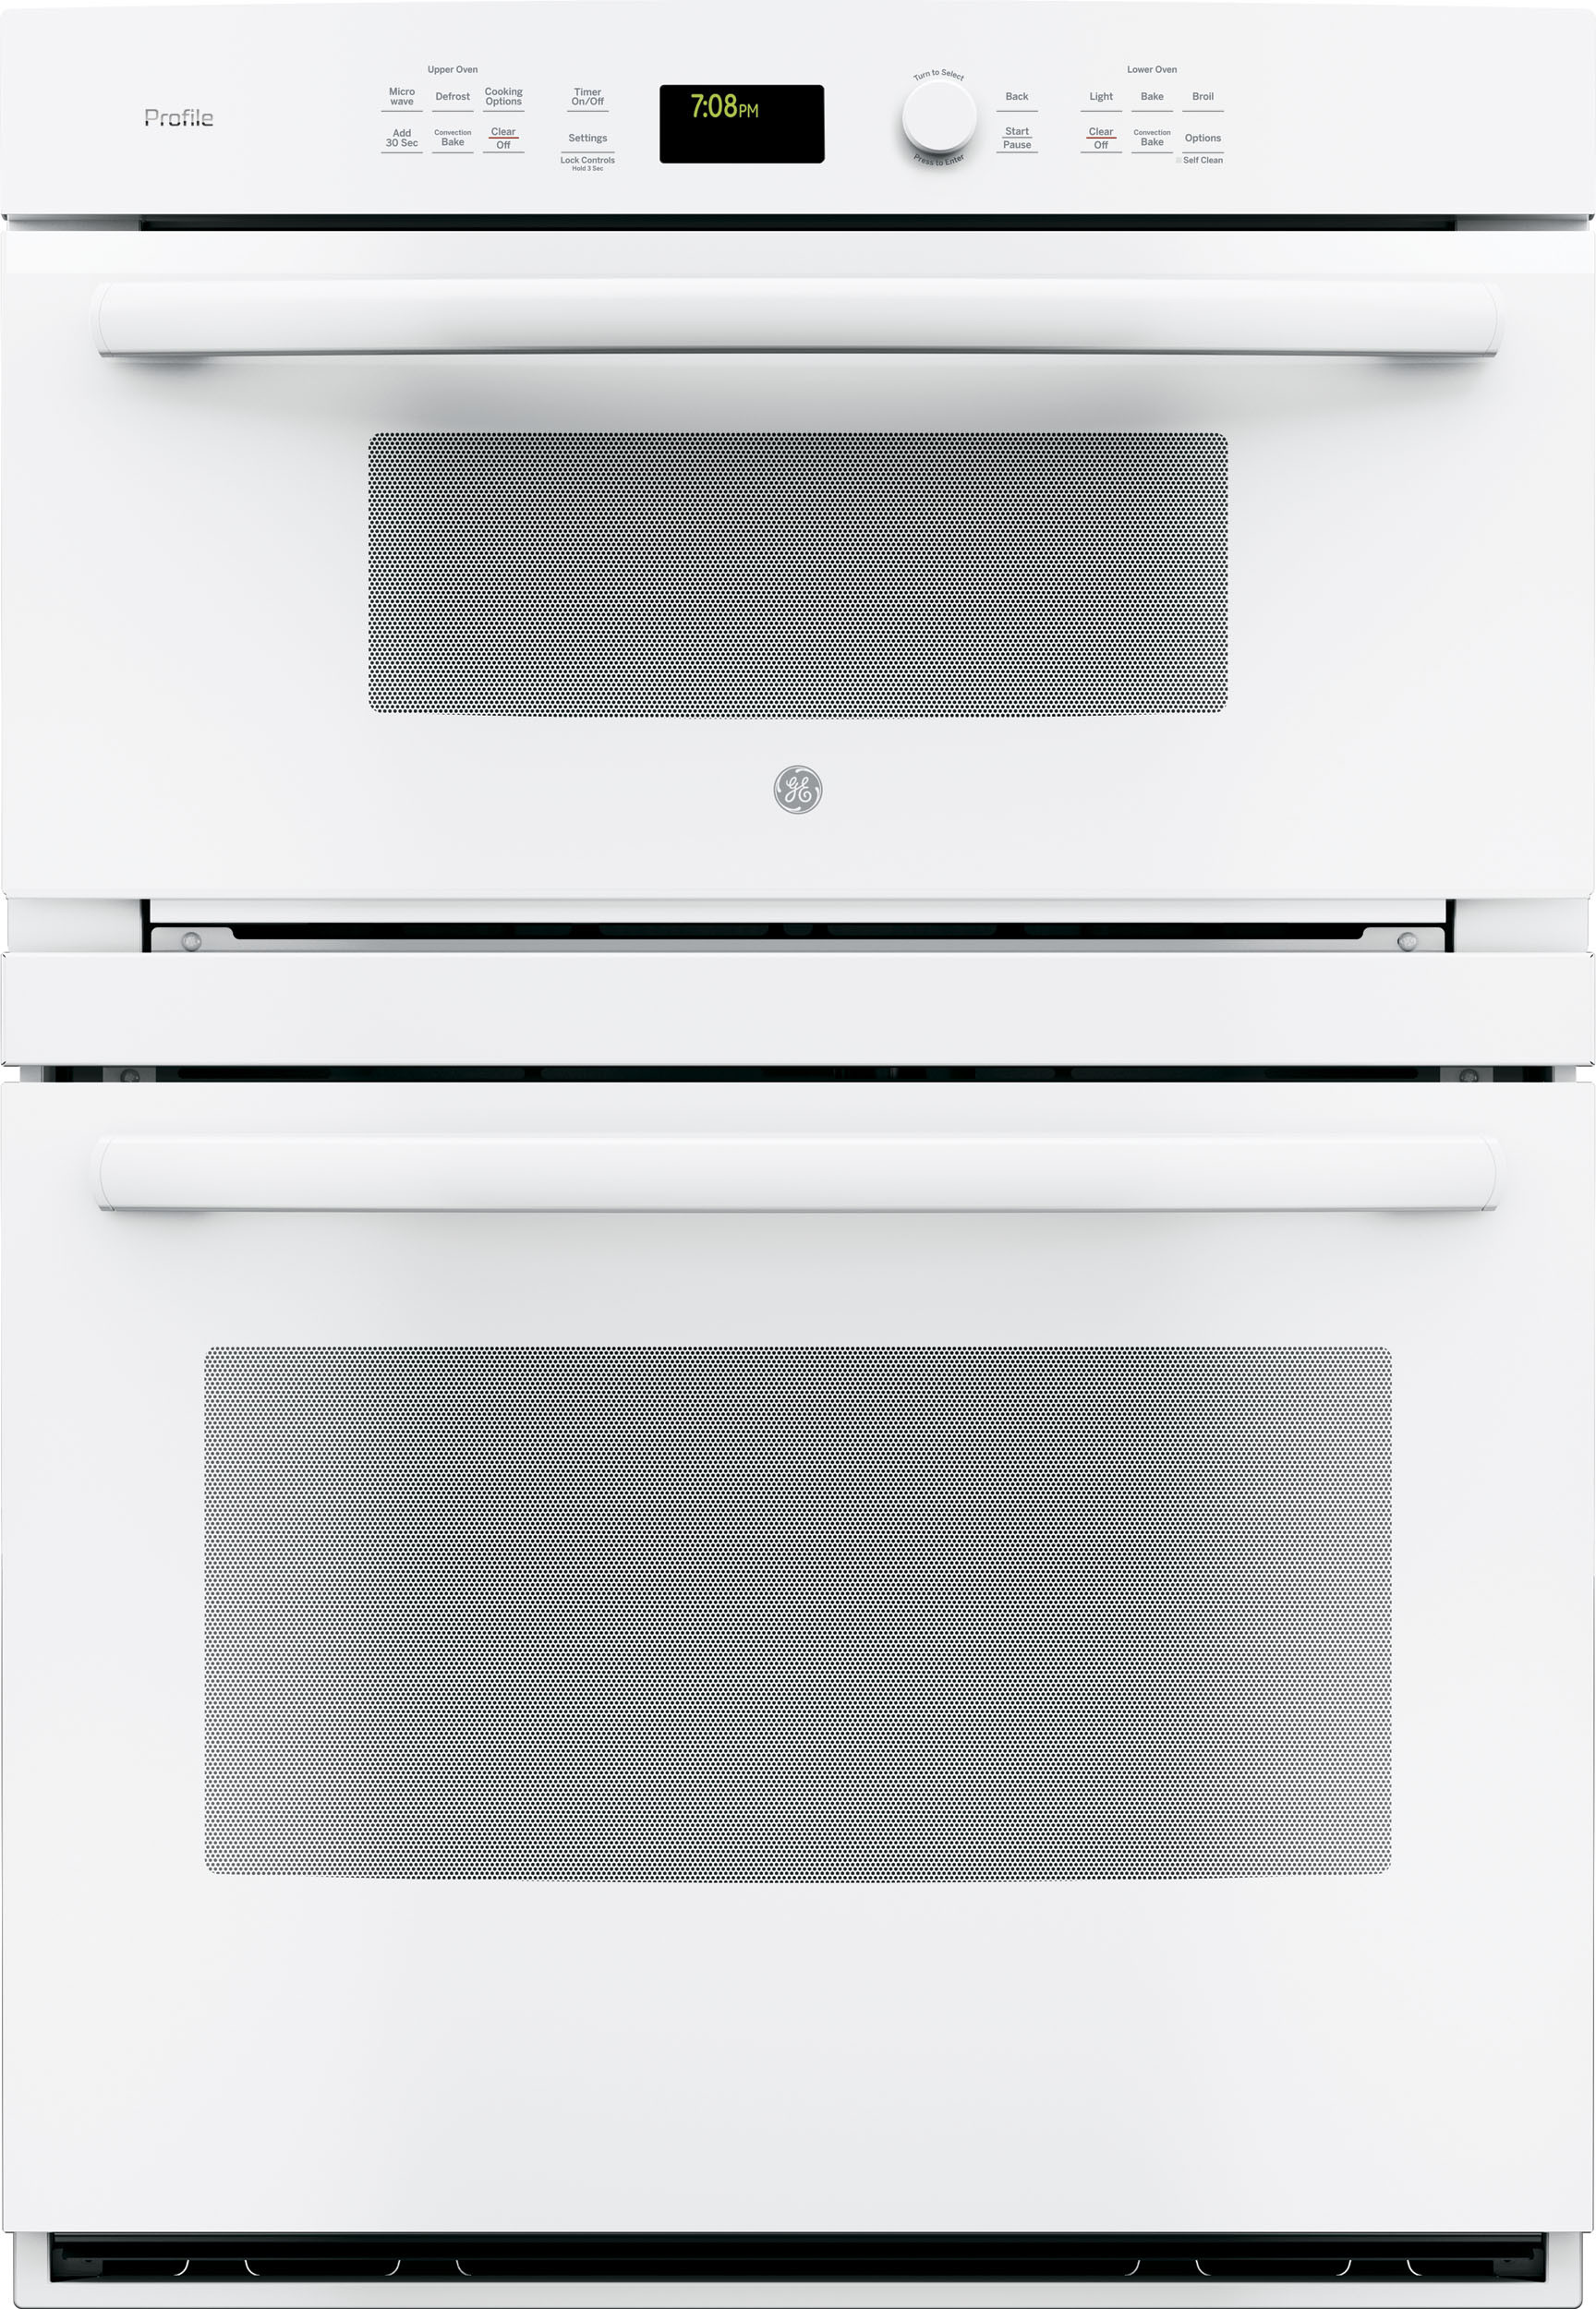 Ge Pt7800dhww 30 Inch Combination Wall Oven With True European Convection Meat Probe Proof Mode Warm 5 0 Cu Ft Capacity 1 7